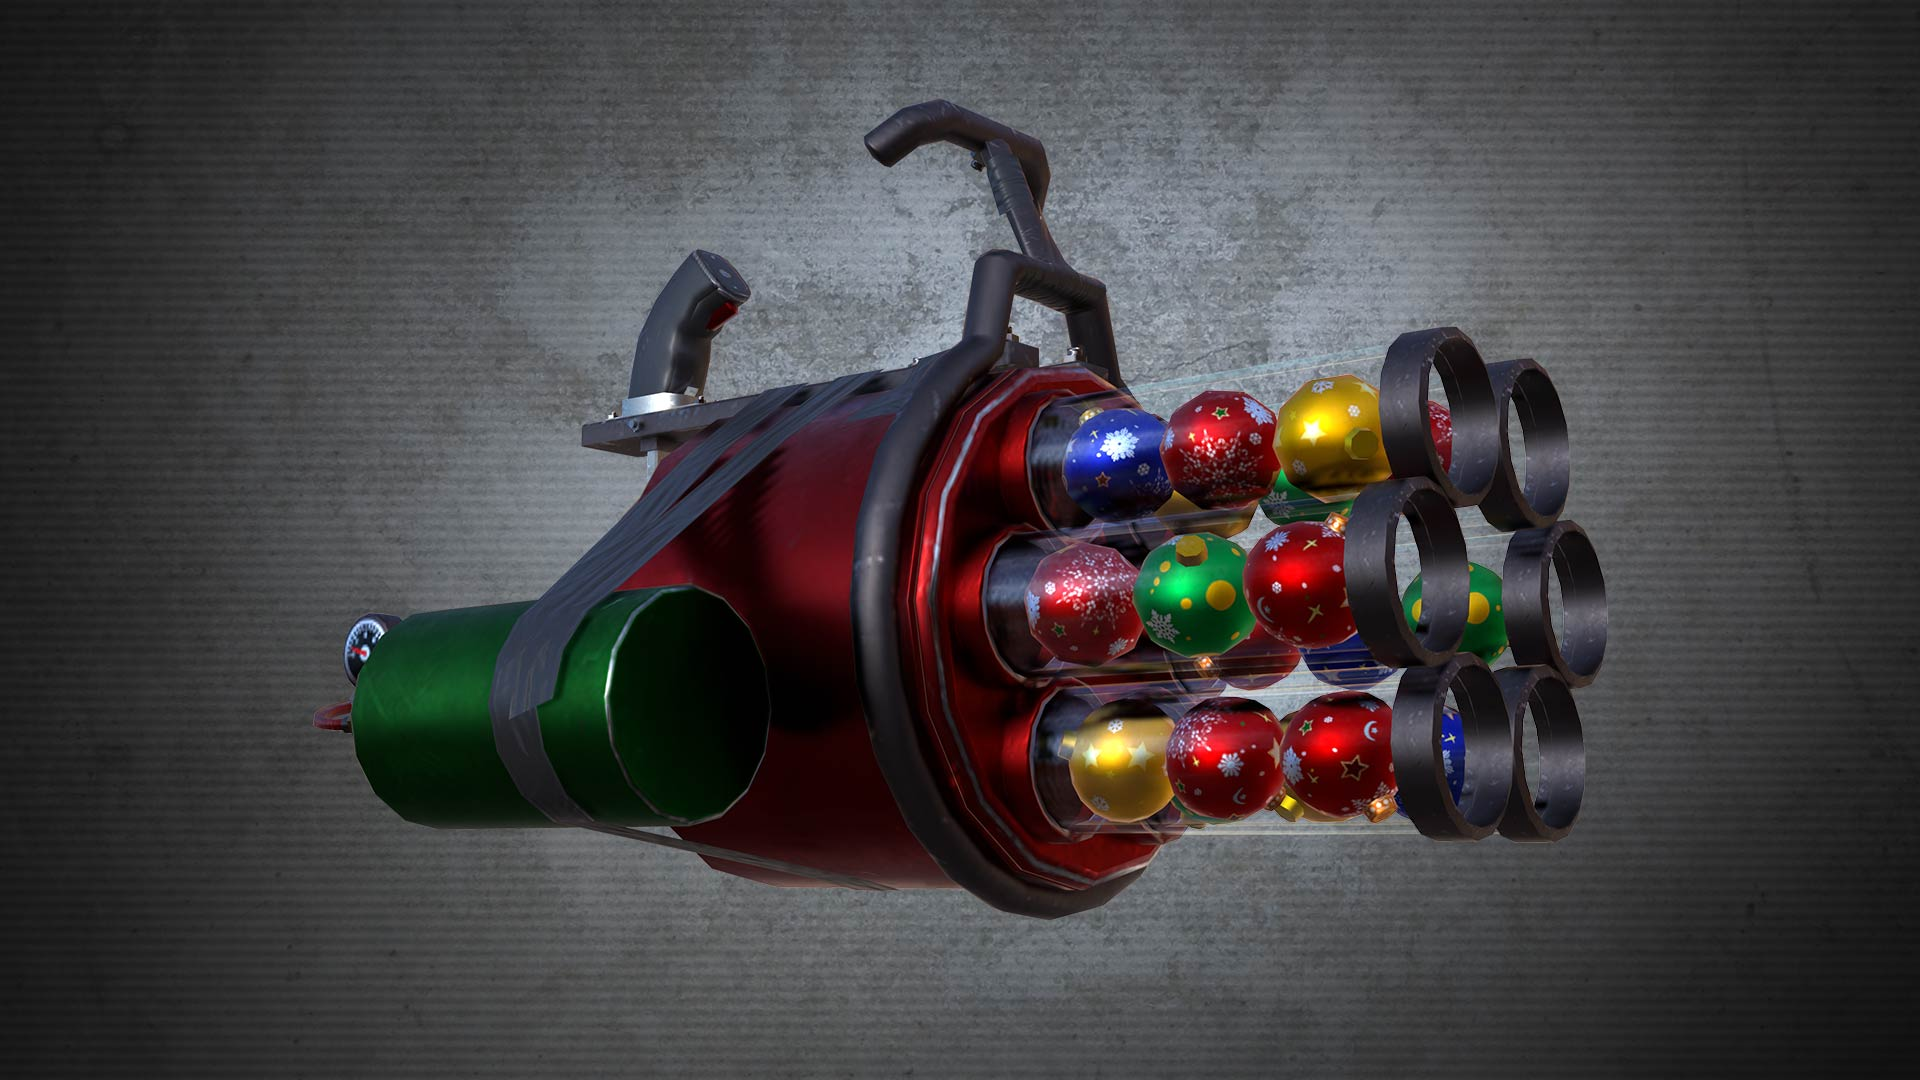 DEAD RISING 4 ORNAMENT GUN